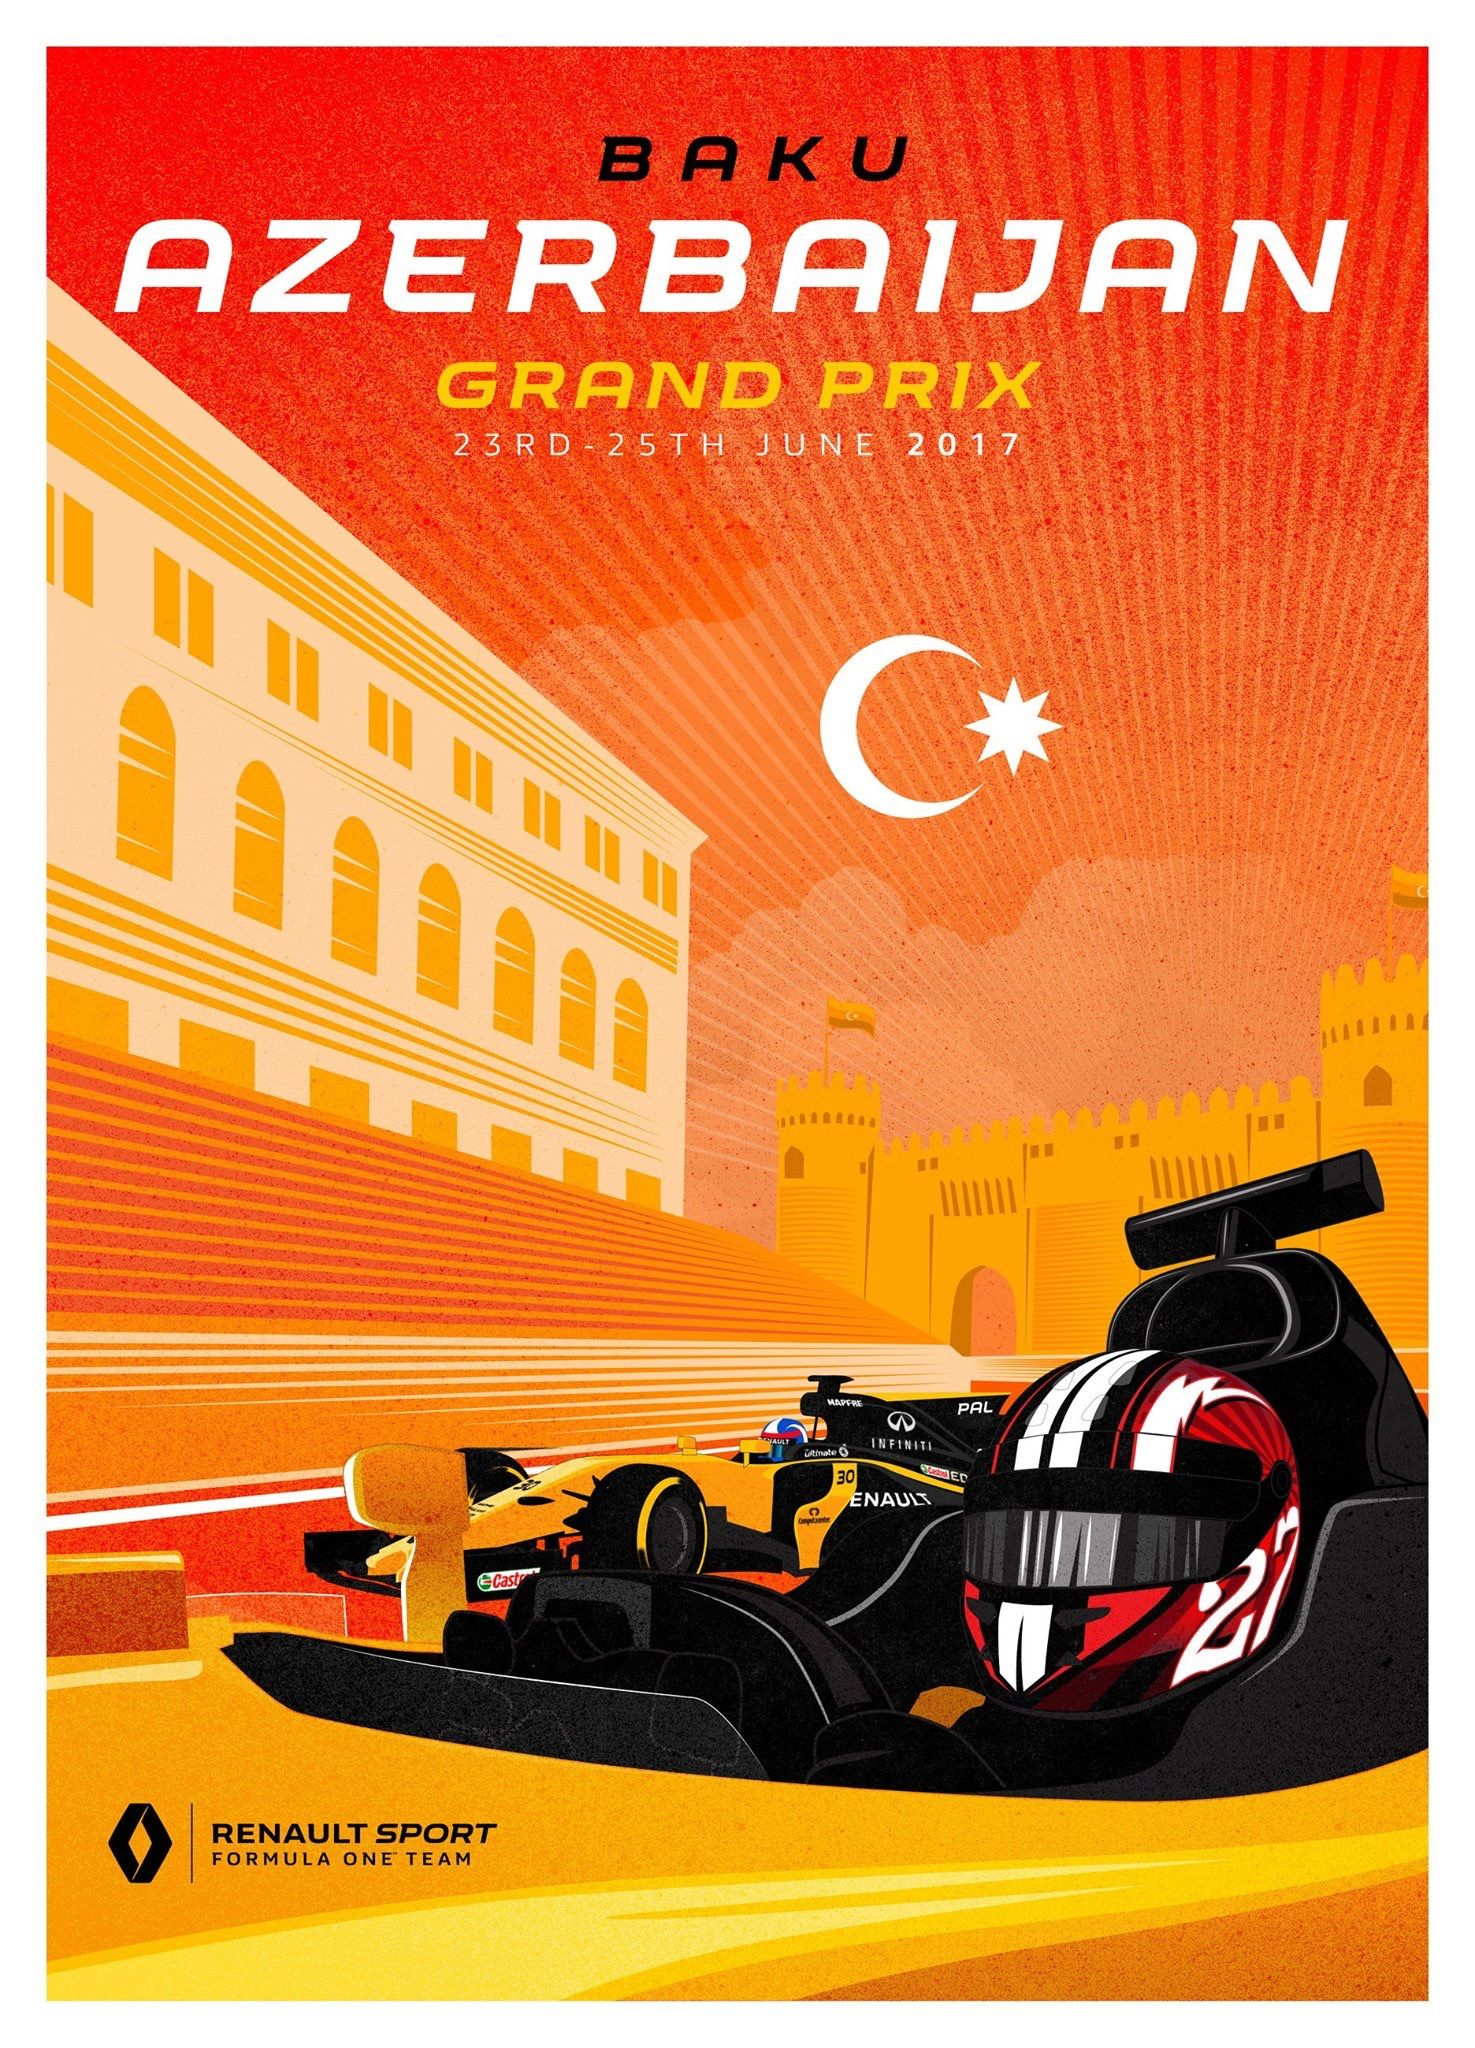 Up Next: The 2017 #F1 European Grand Prix at the Baku City Circuit.